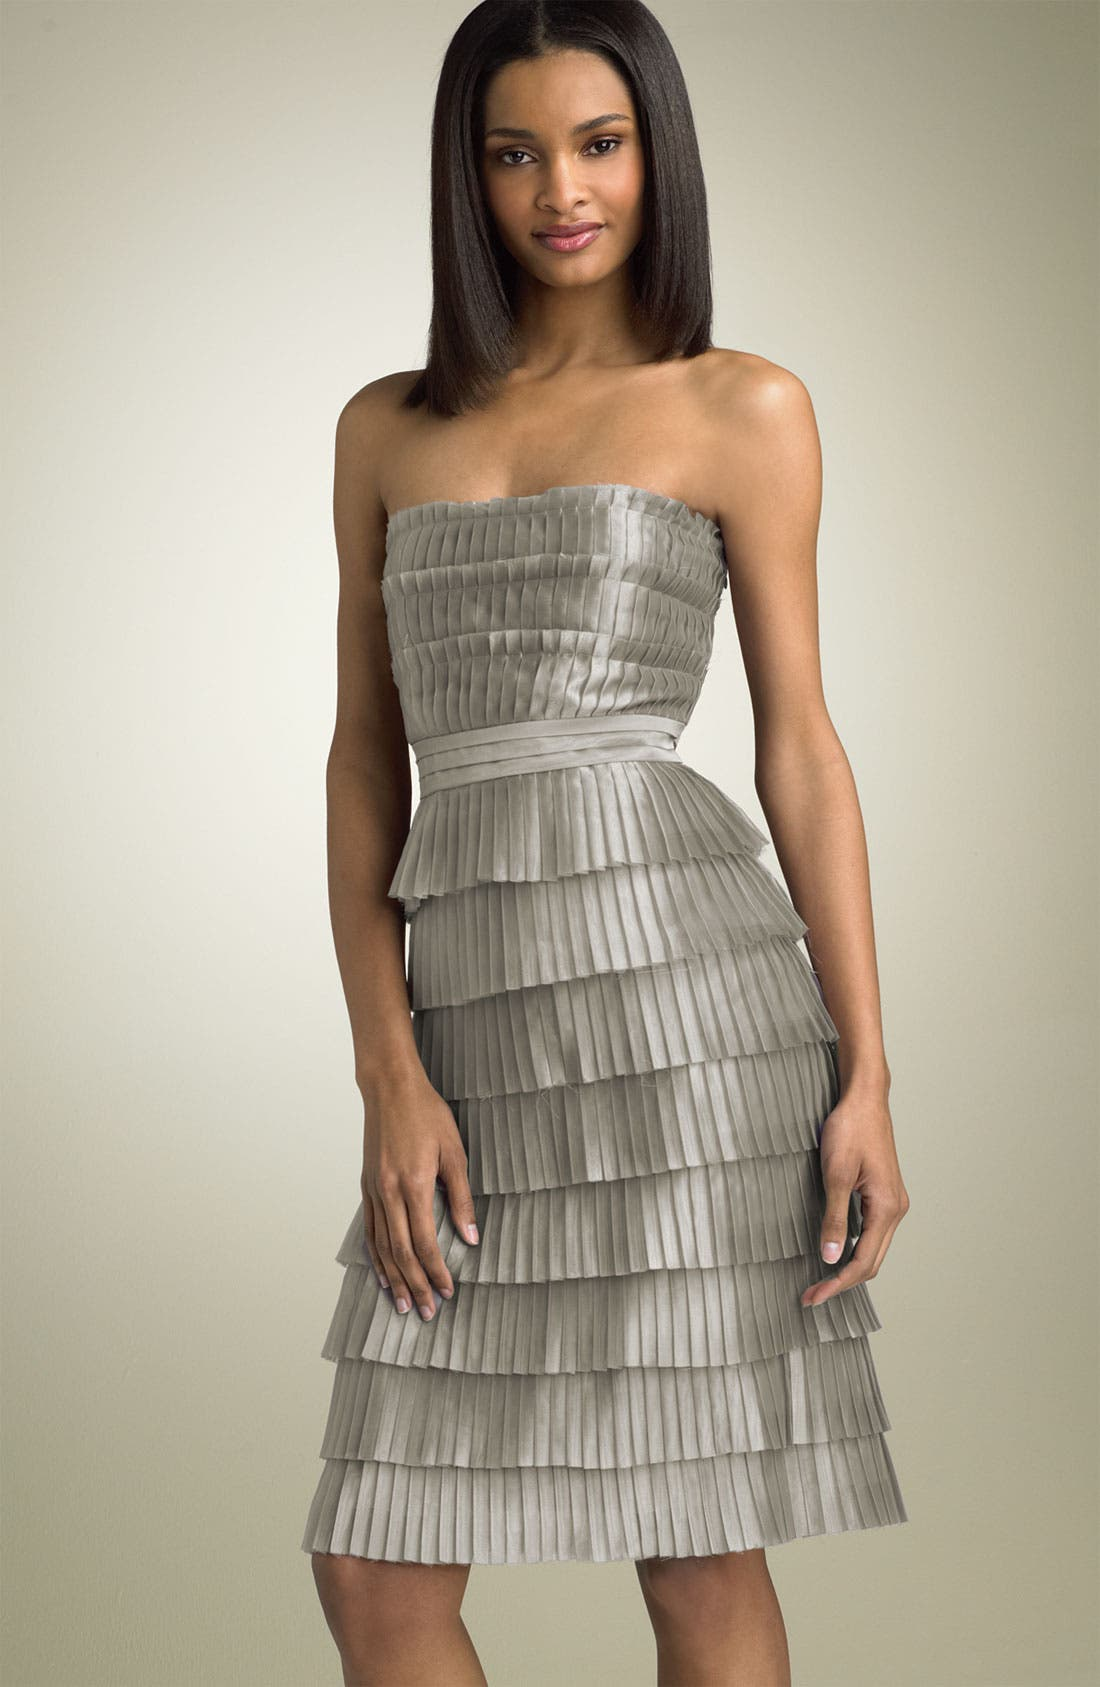 Strapless Tiered Dress,                             Main thumbnail 1, color,                             096